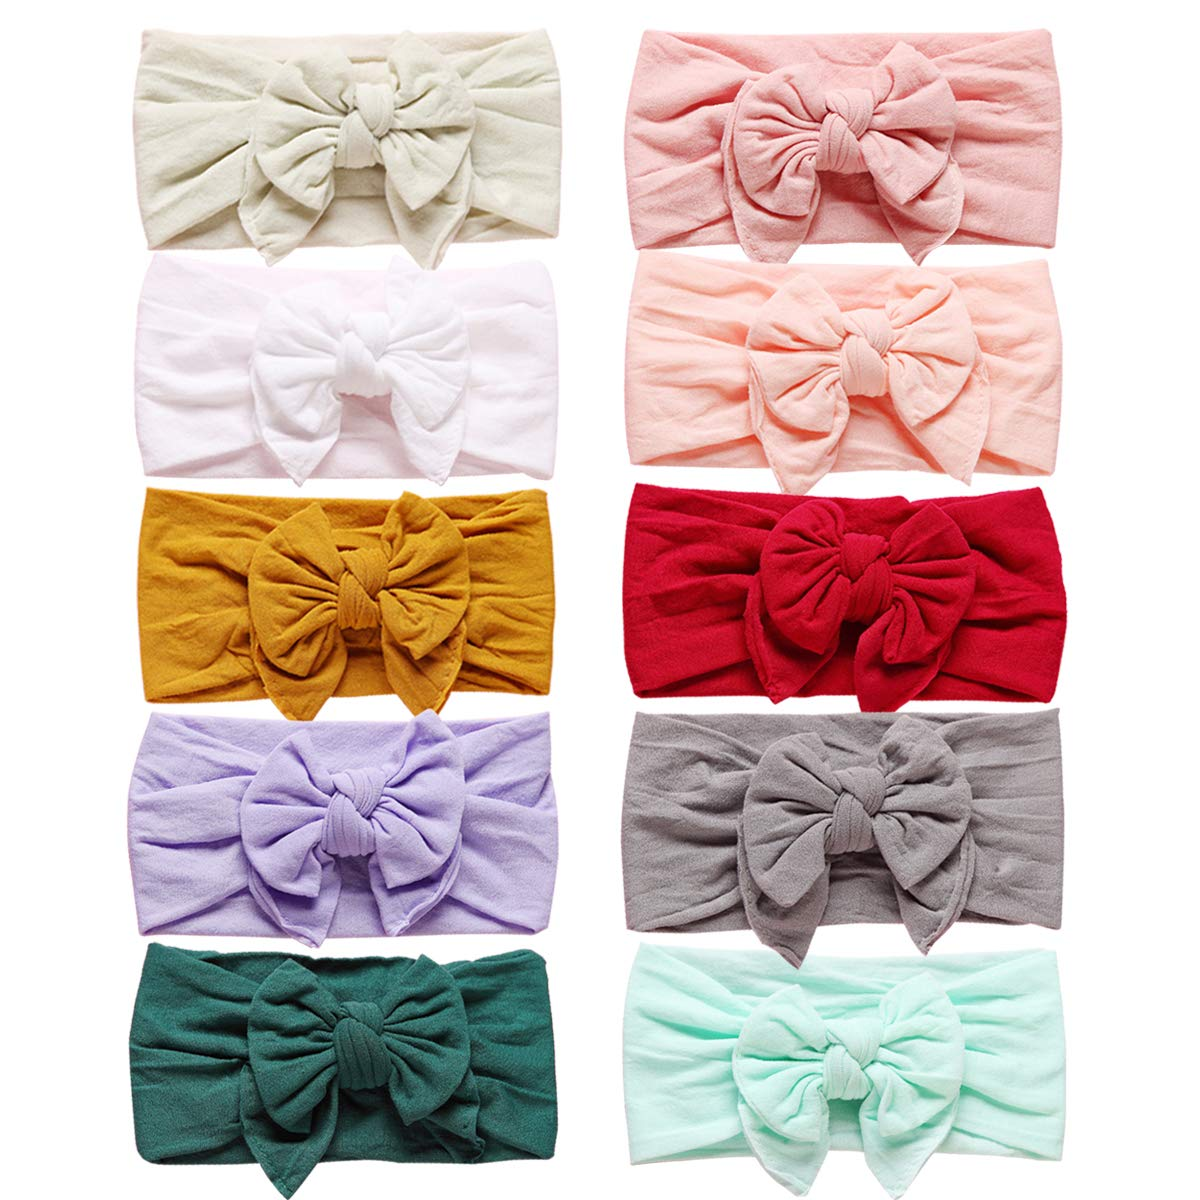 Baby Stretchy Headband Turban Knotted, Girl's Hairbands with Bows Big Hair Bow Headband for Infant Baby Girls (SM07)